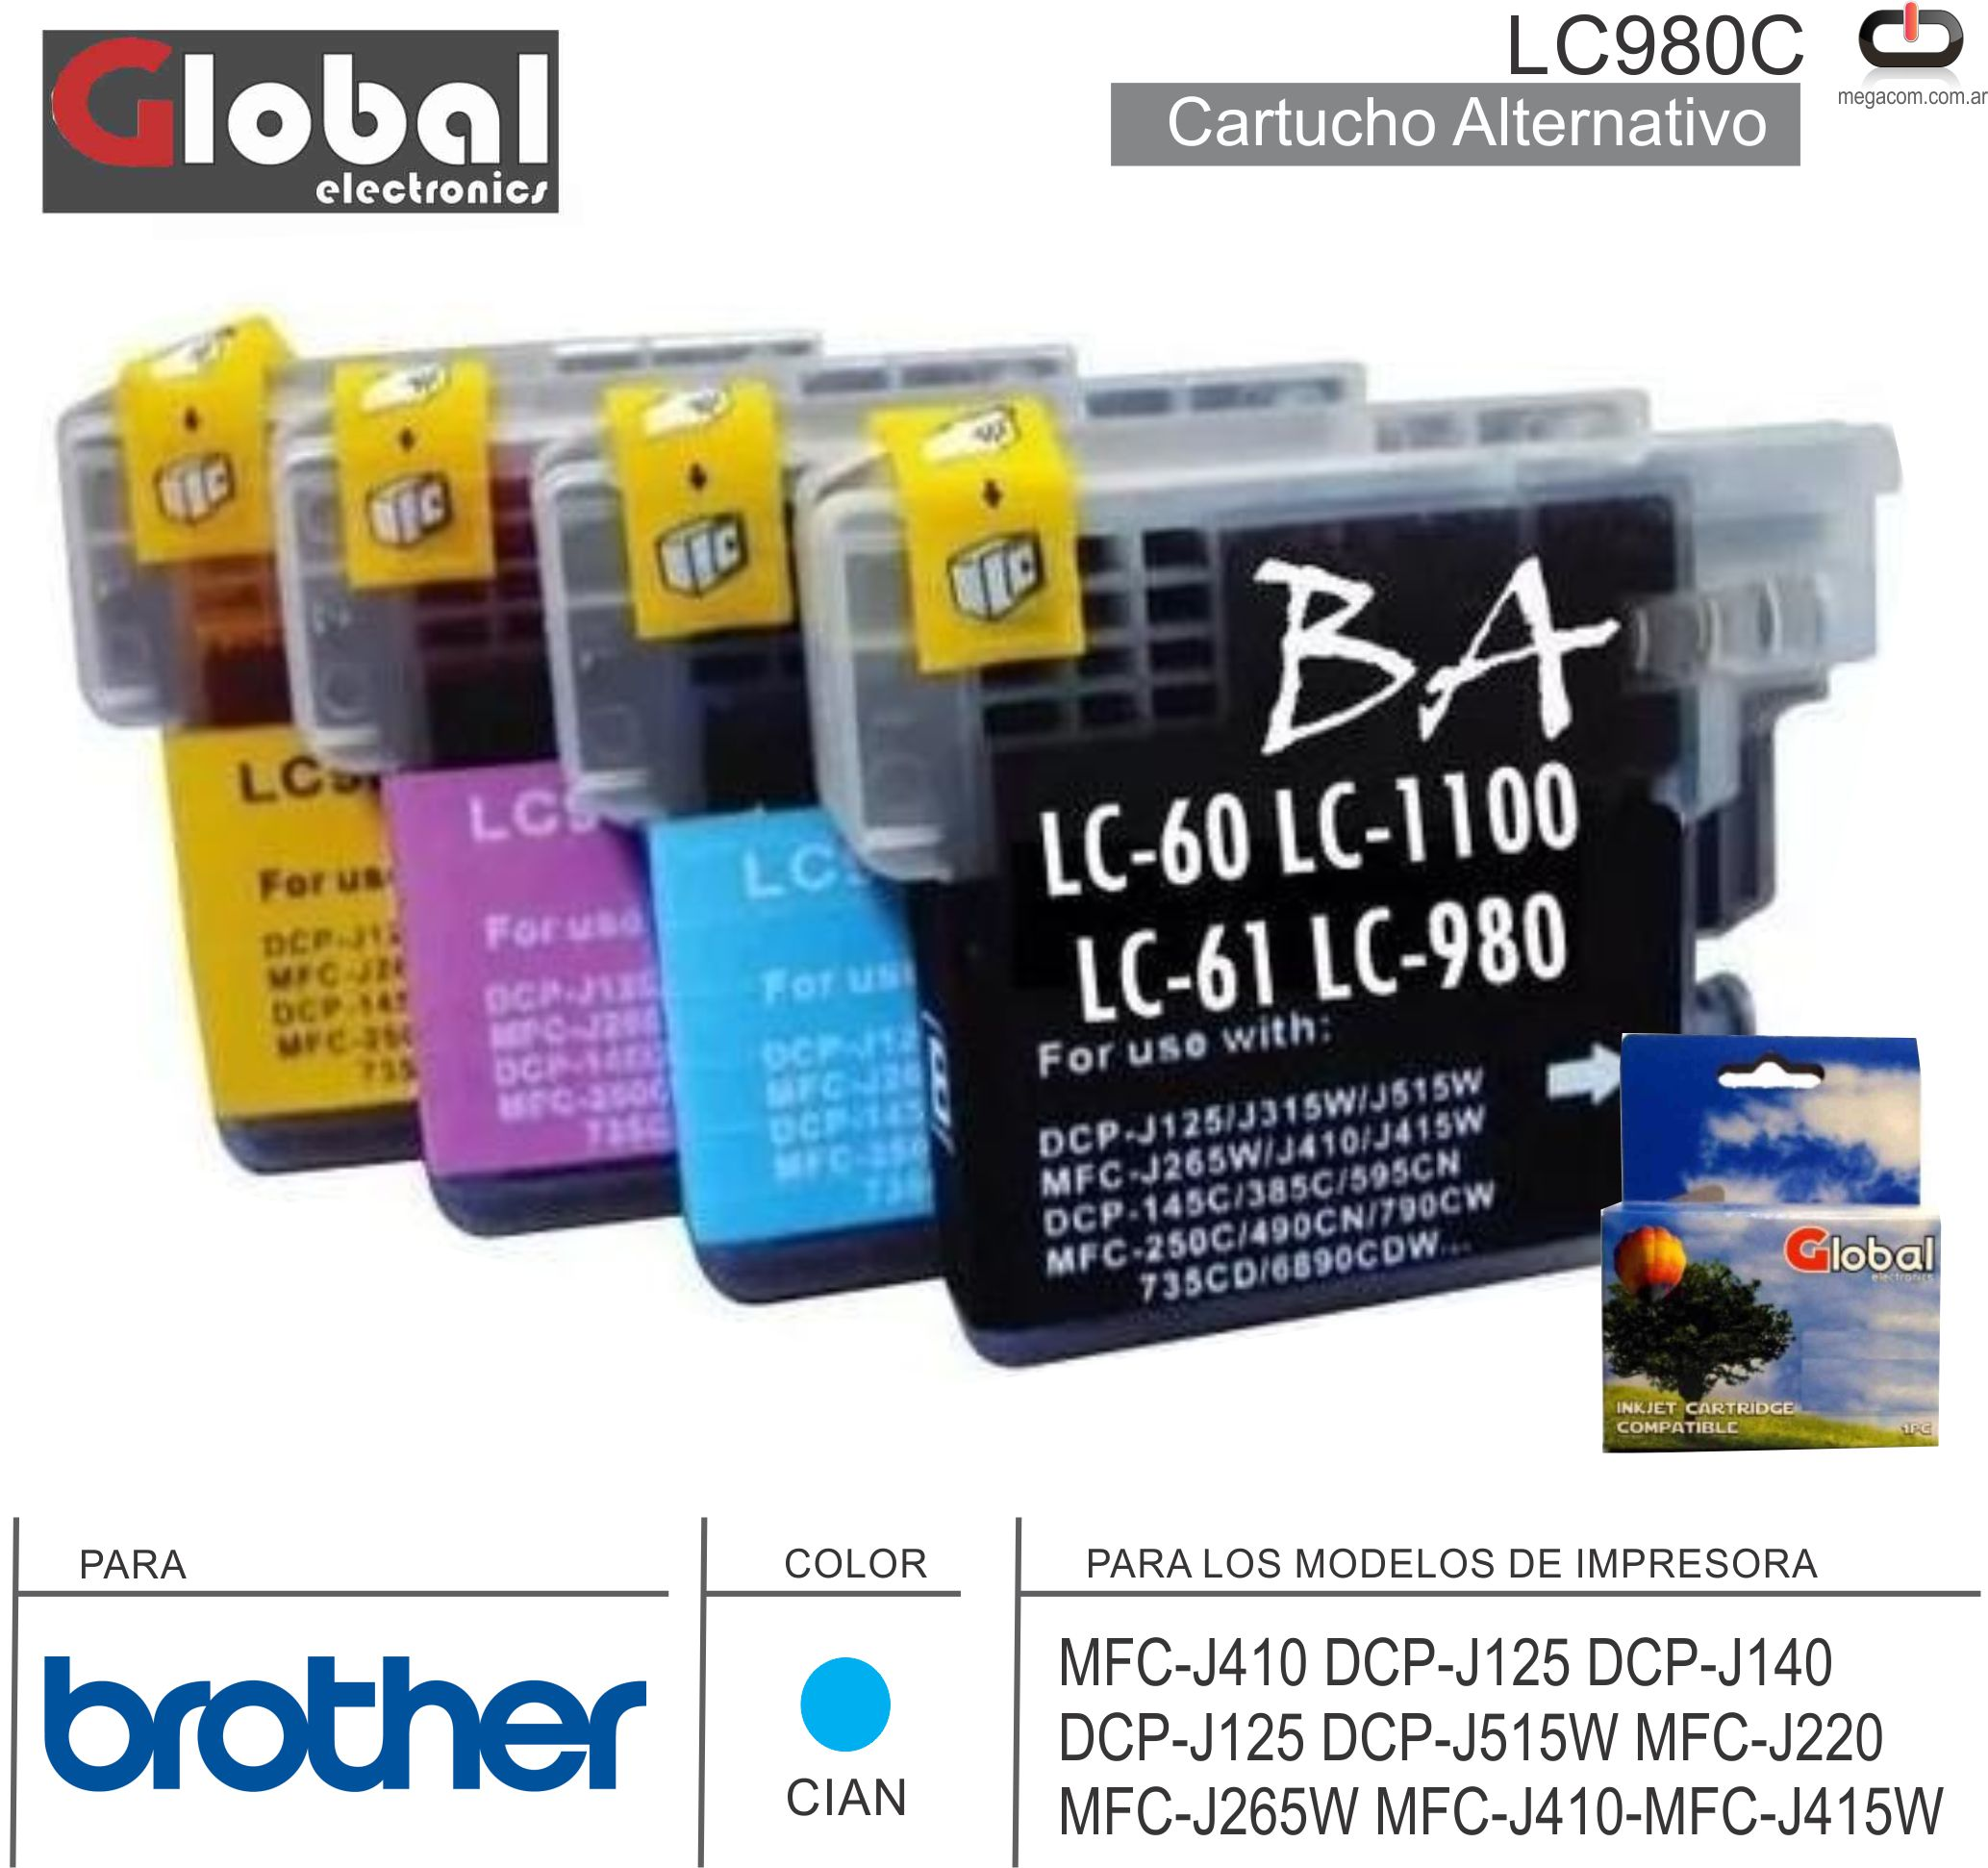 Cart ALT BROTHER LC980C Cia GLOBAL